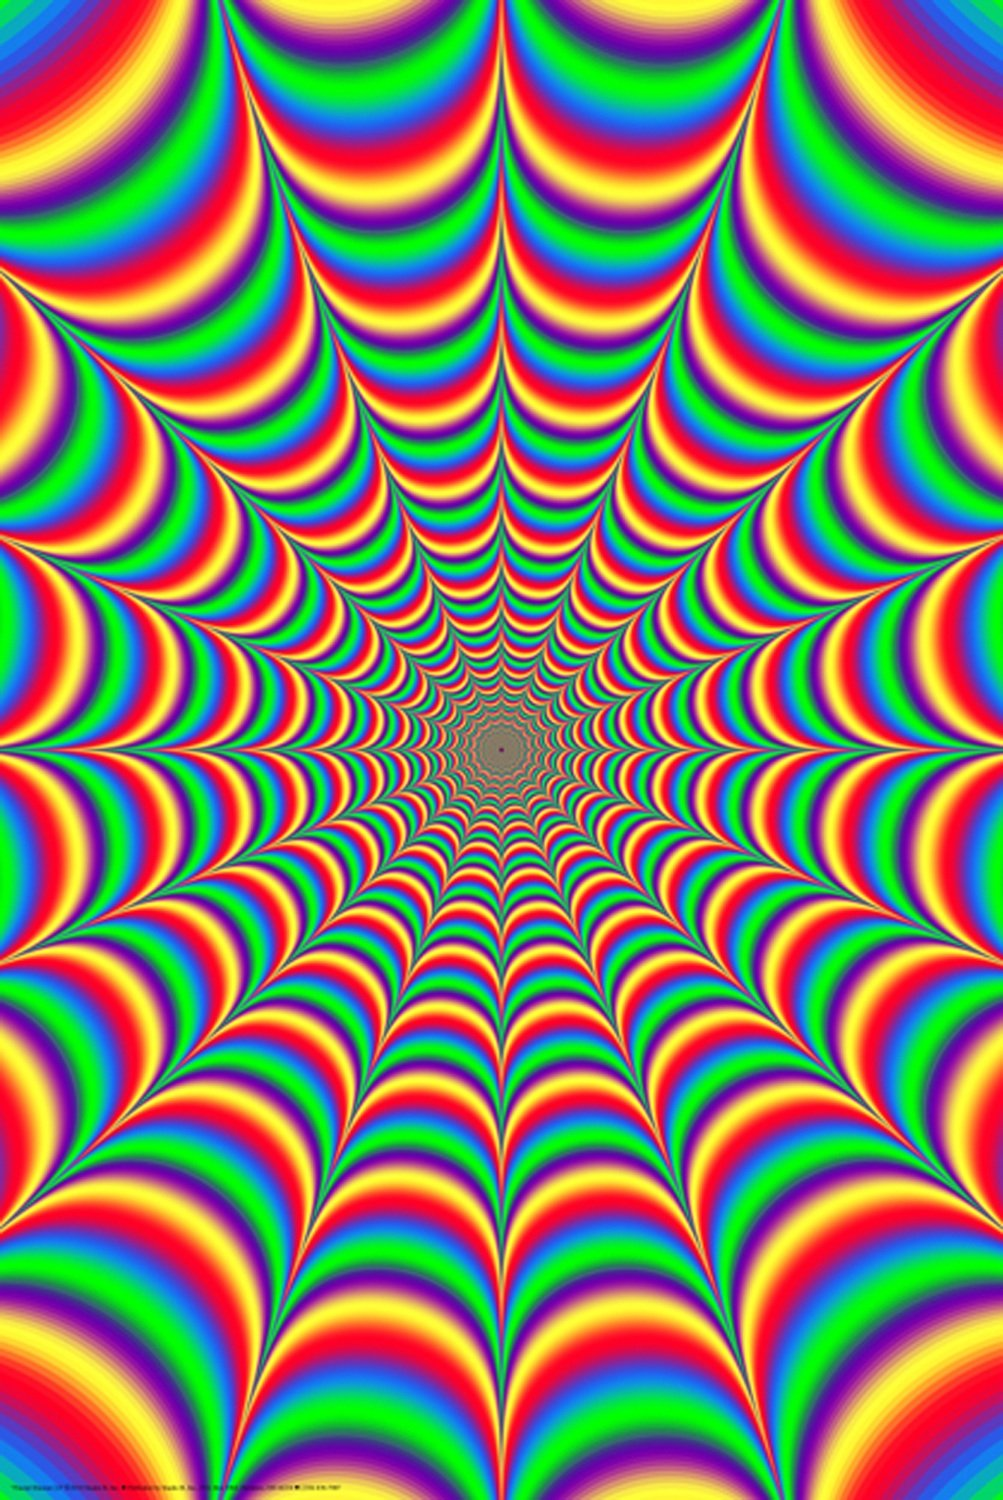 illusion trippy fractal poster posters moving optical 24x36 multicolor mint fantasy amazon